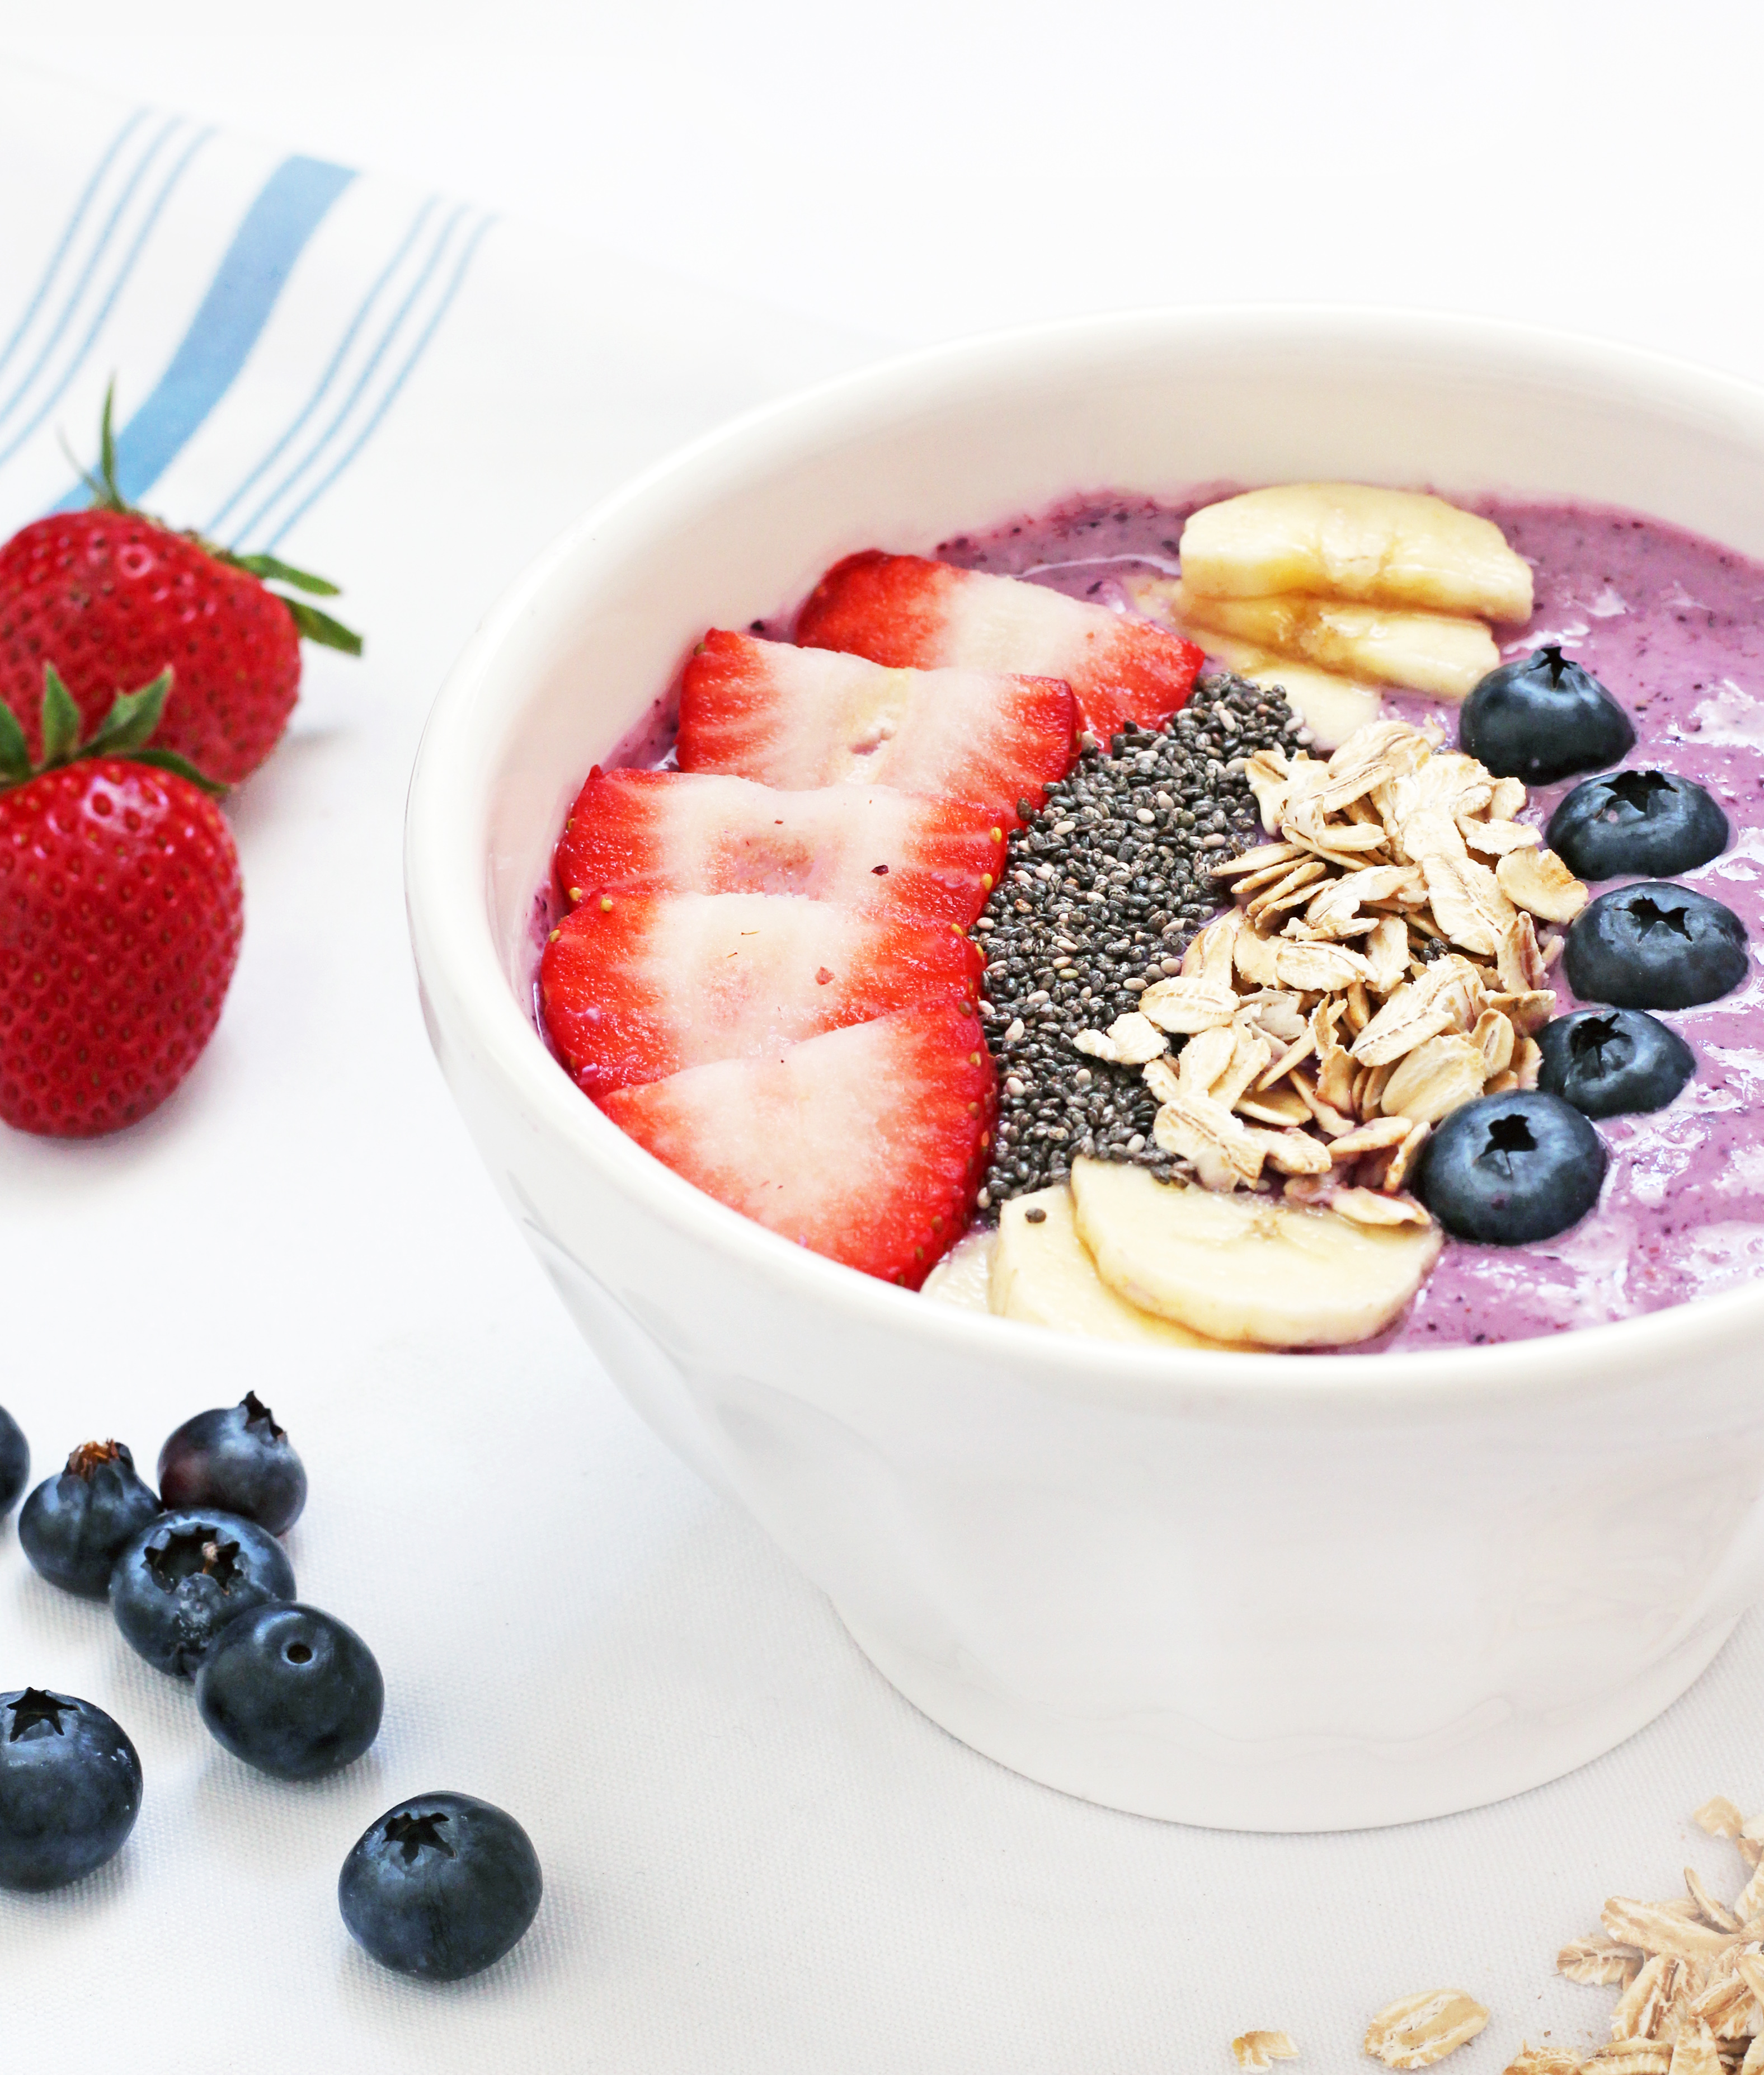 The Berry Banana Smoothie Bowl recipe is a blend of blueberries, strawberries, banana, yogurt and oats. It's pleasing to the eye and your tastebuds! | Recipe by @haleydwilliams